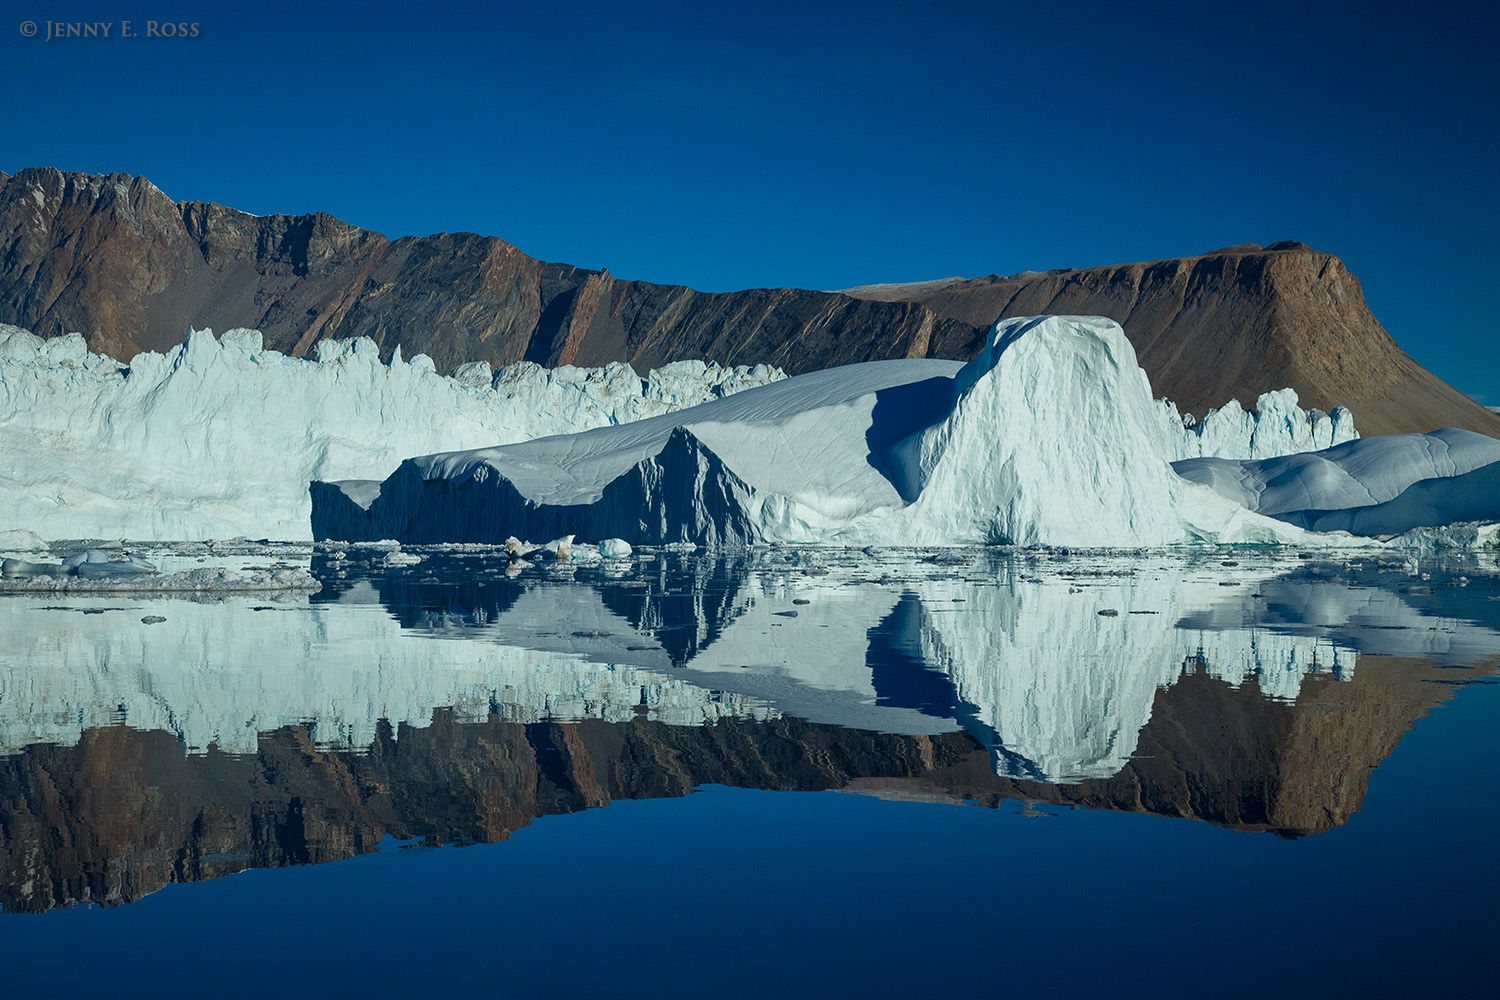 Icebergs, ancient metamorphosed sedimentary rock, and Daugaard-Jensen Glacier are reflected in the still water of Norvest Fjord in Scoresby Sund, Northeast Greenland National Park, Northeast Greenland.